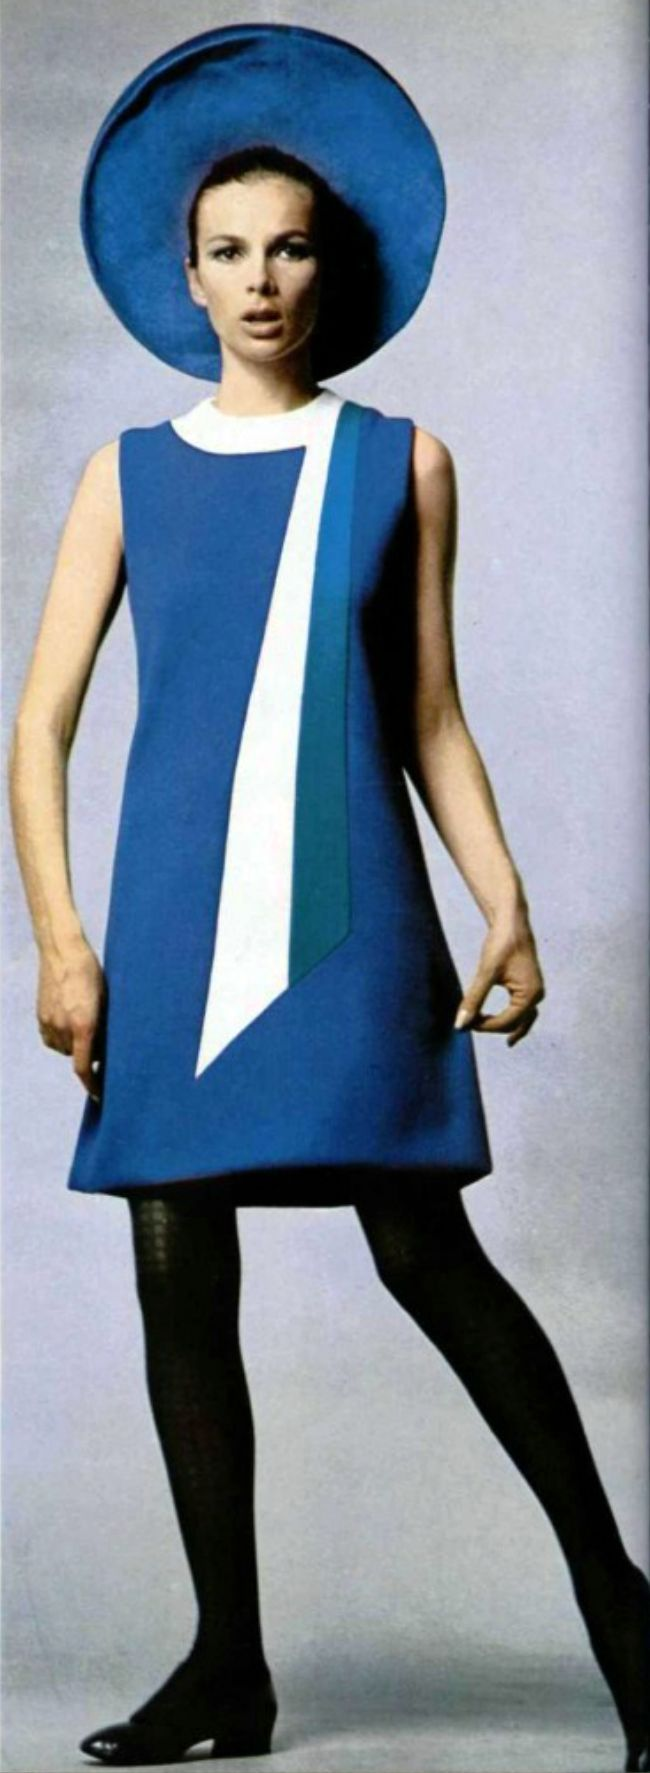 1967 L'officiel magazine Pierre Cardin